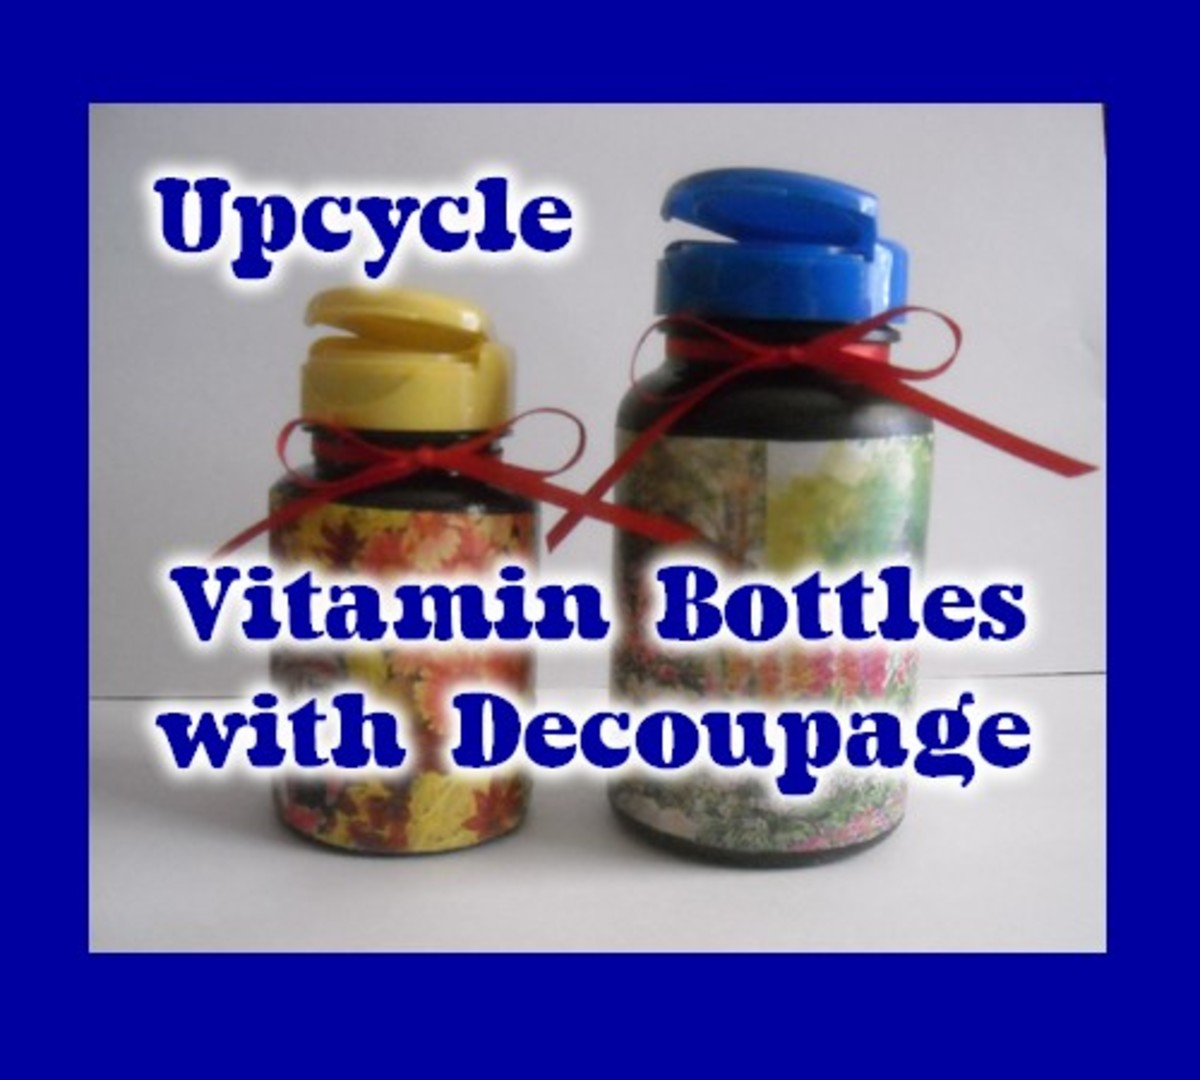 Upcycle Vitamin Bottles with Decoupage